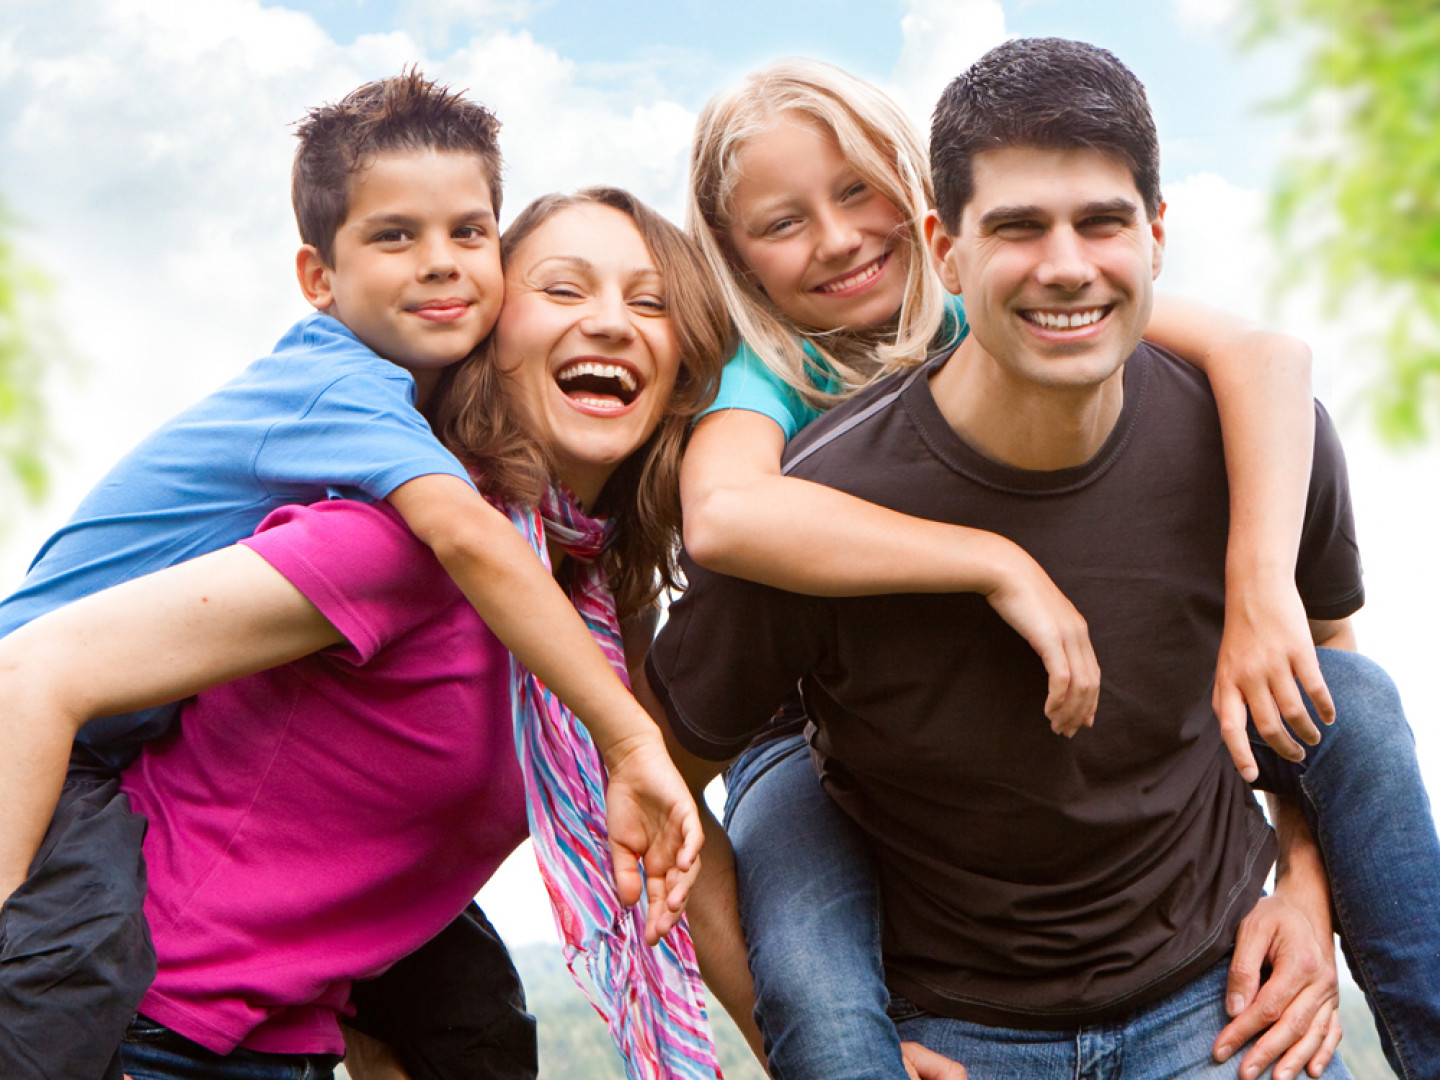 Ask about our juvenile life insurance policies